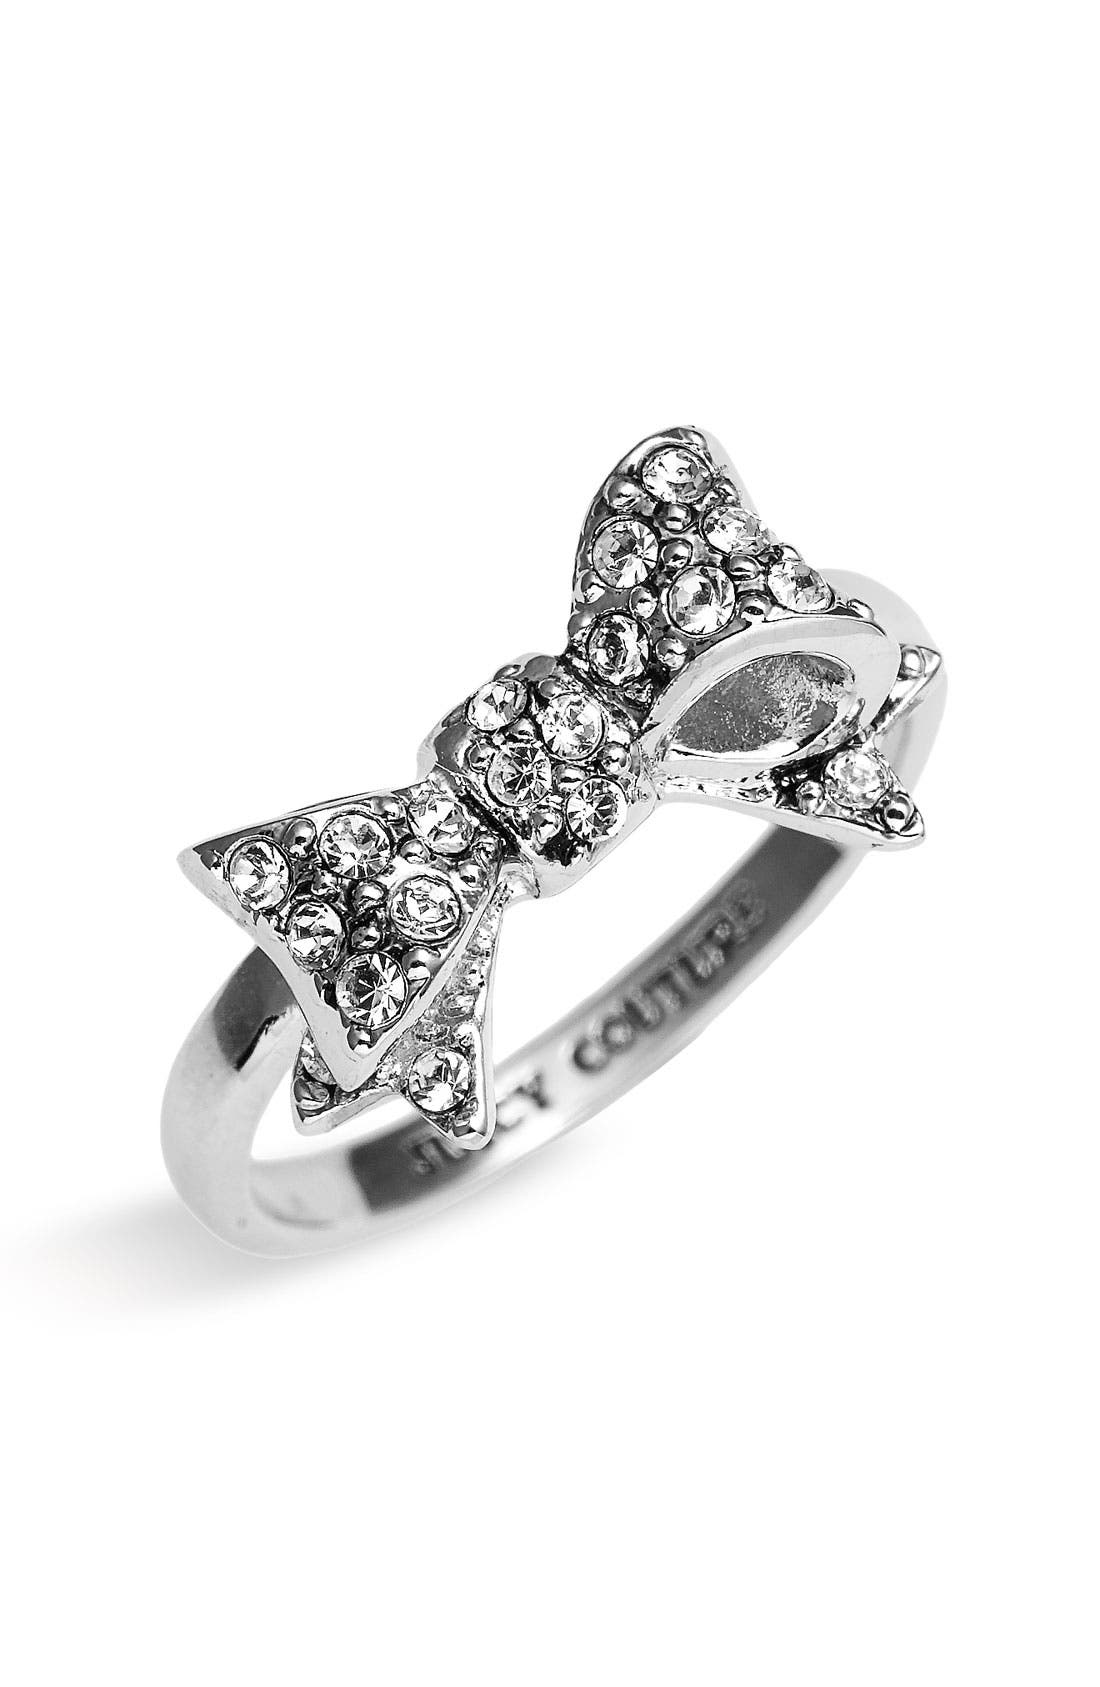 Alternate Image 1 Selected - Juicy Couture 'Bows for a Starlet' Pavé Bow Ring